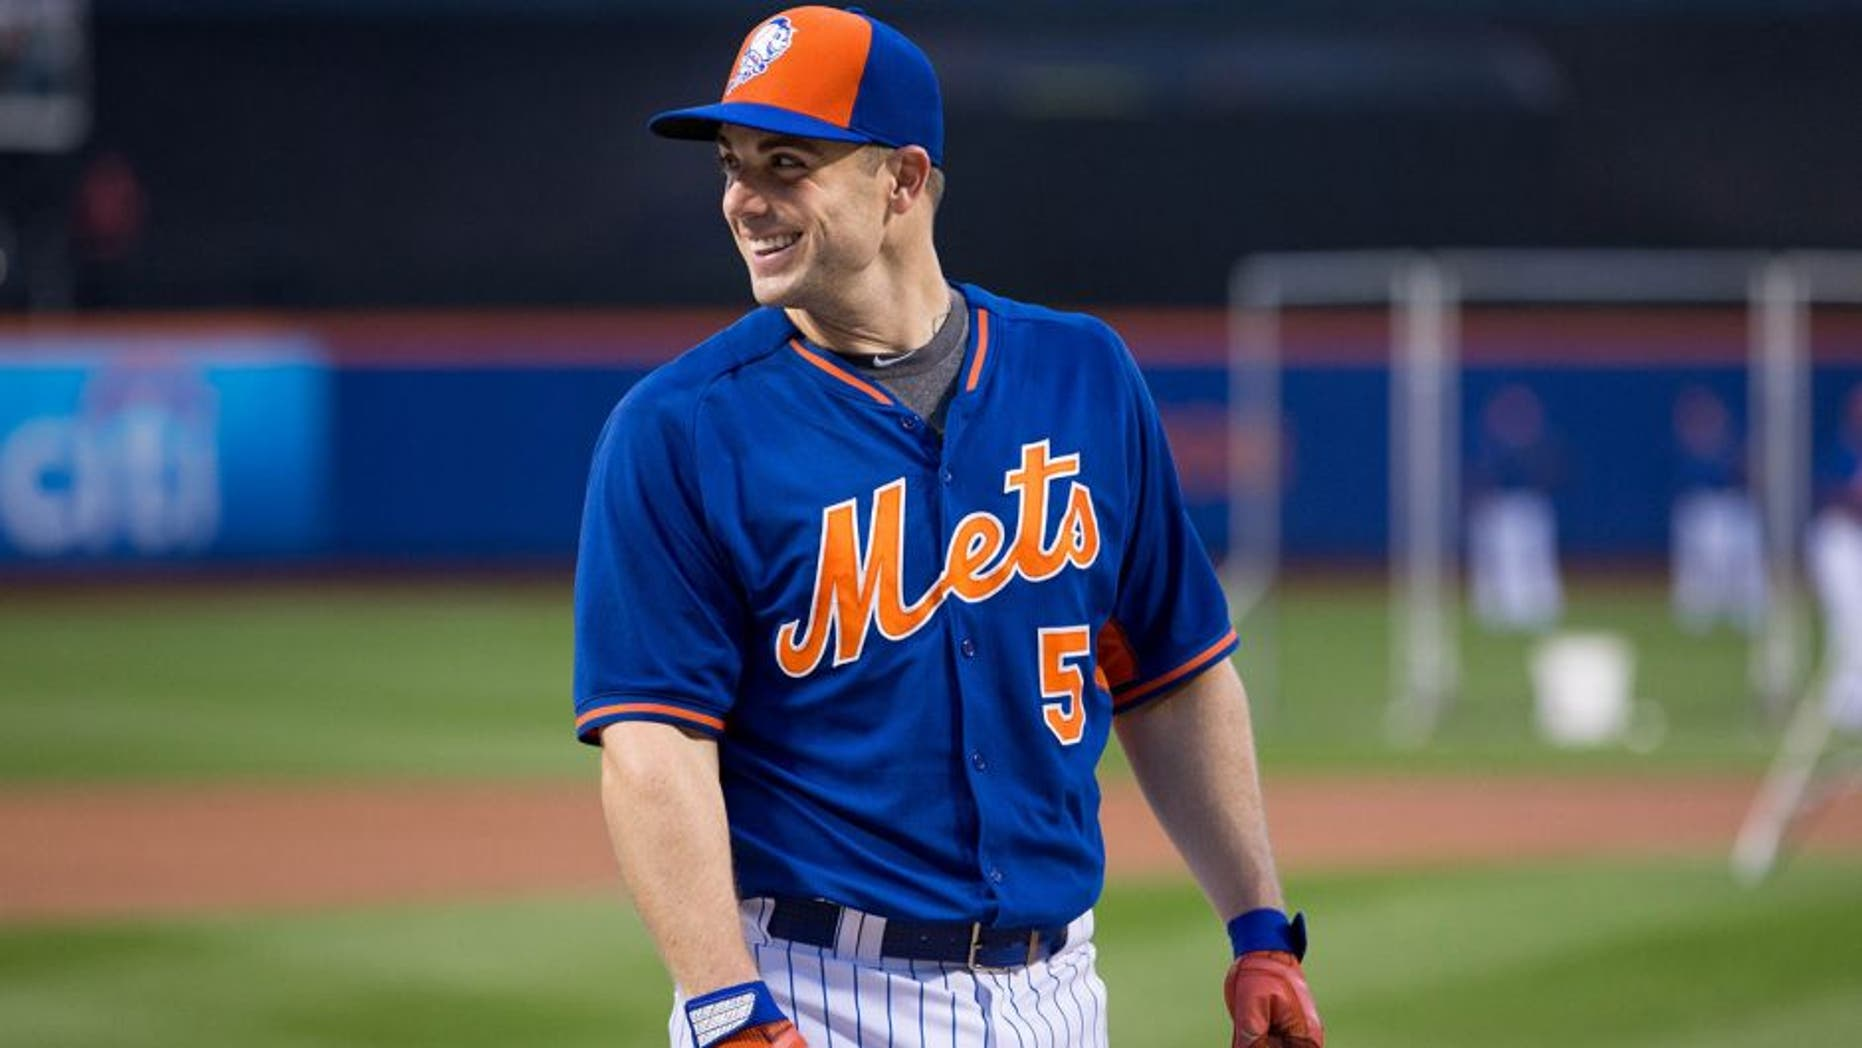 NEW YORK, NY - OCTOBER 13: David Wright #5 of the New York Mets looks on during batting practice before Game 4 of the NLDS against the Los Angeles Dodgers at Citi Field on Tuesday, October 13, 2015 in the Queens borough of New York City. (Photo by Alex Trautwig/MLB Photos via Getty Images) *** Local Caption)